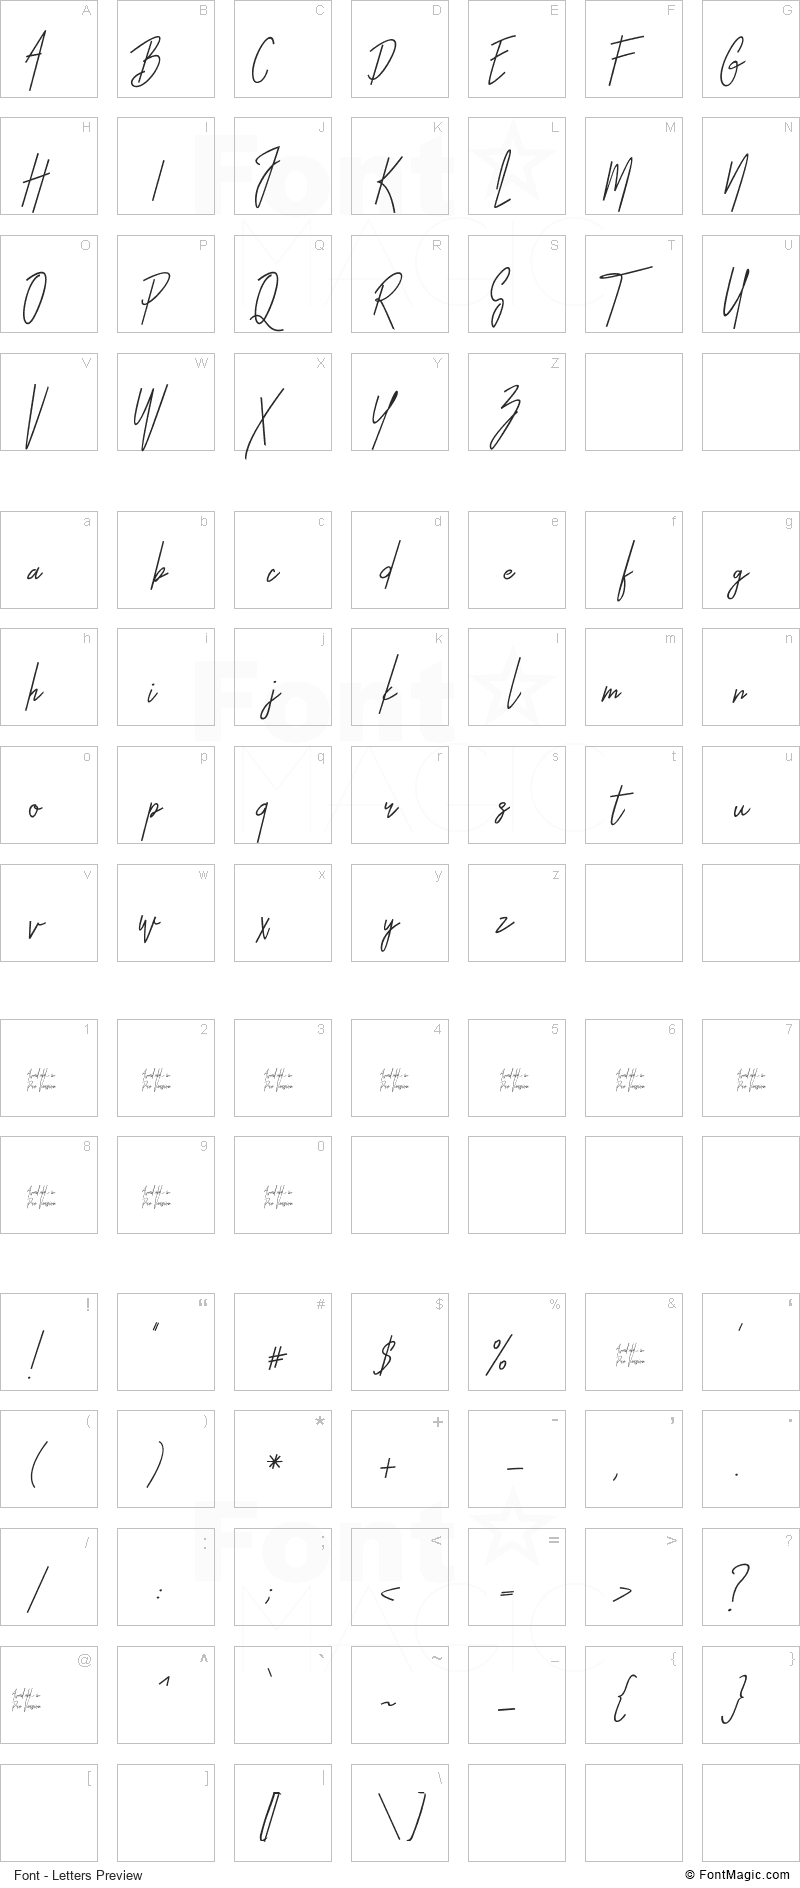 Otella Font - All Latters Preview Chart